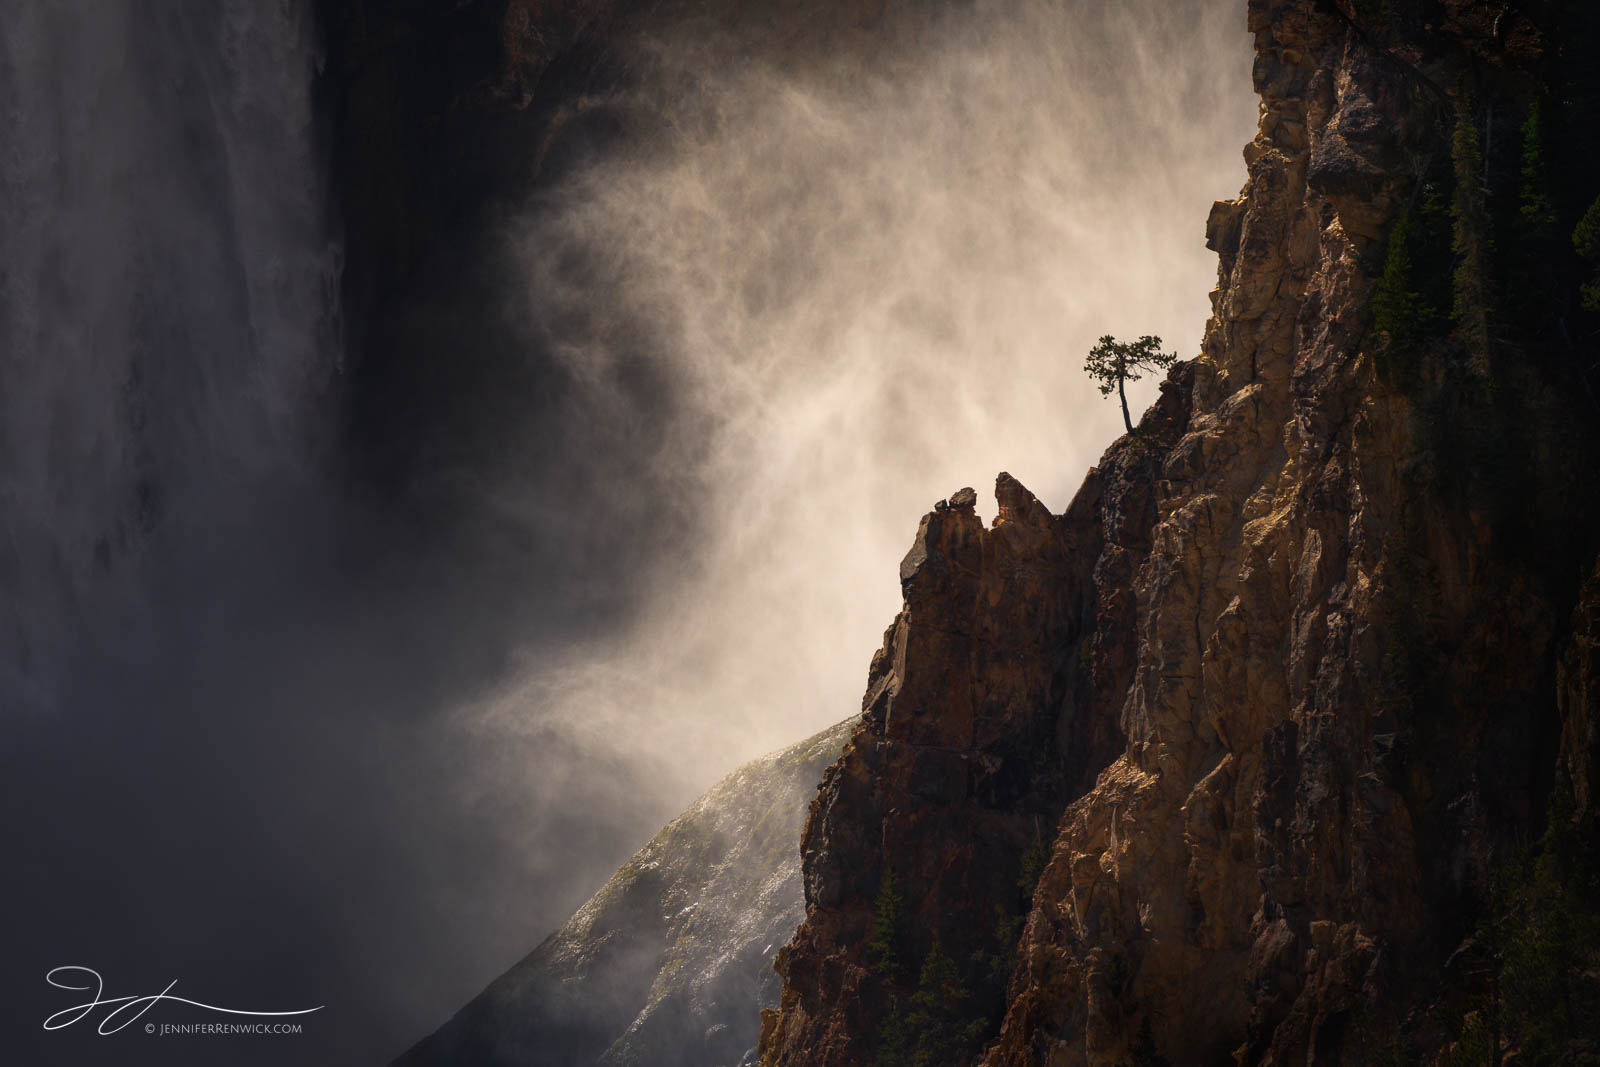 Lower Falls, Grand Canyon of the Yellowstone, Wyoming, Yellowstone national park, small scene, tree, mist, waterfall, backlit, landscape, photo